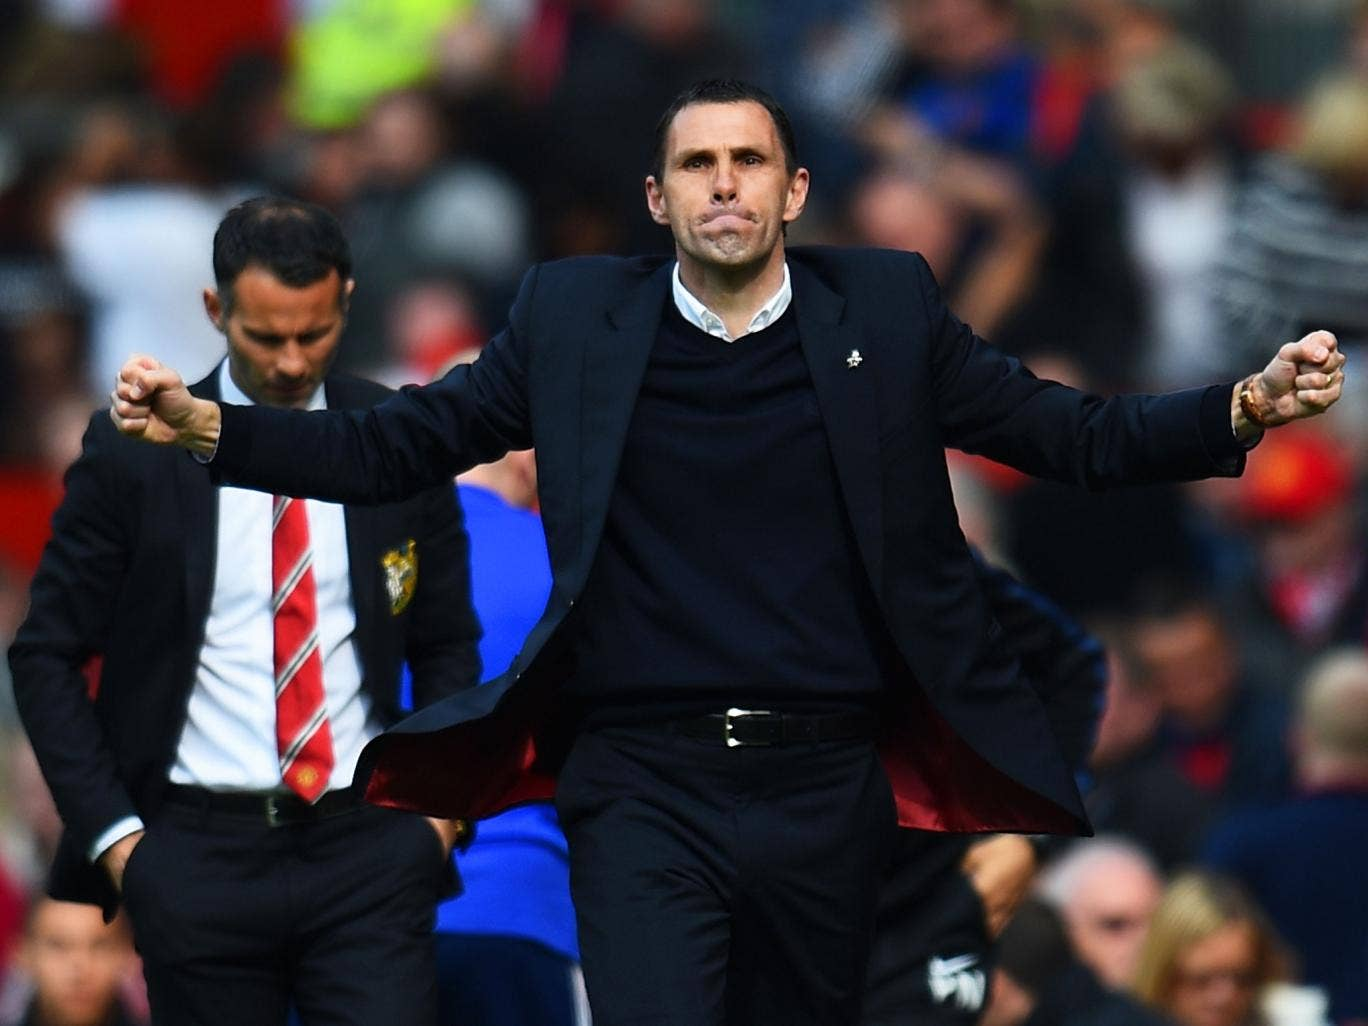 Sunderland manager Gus Poyet celebrates in front of a downcast Ryan Giggs